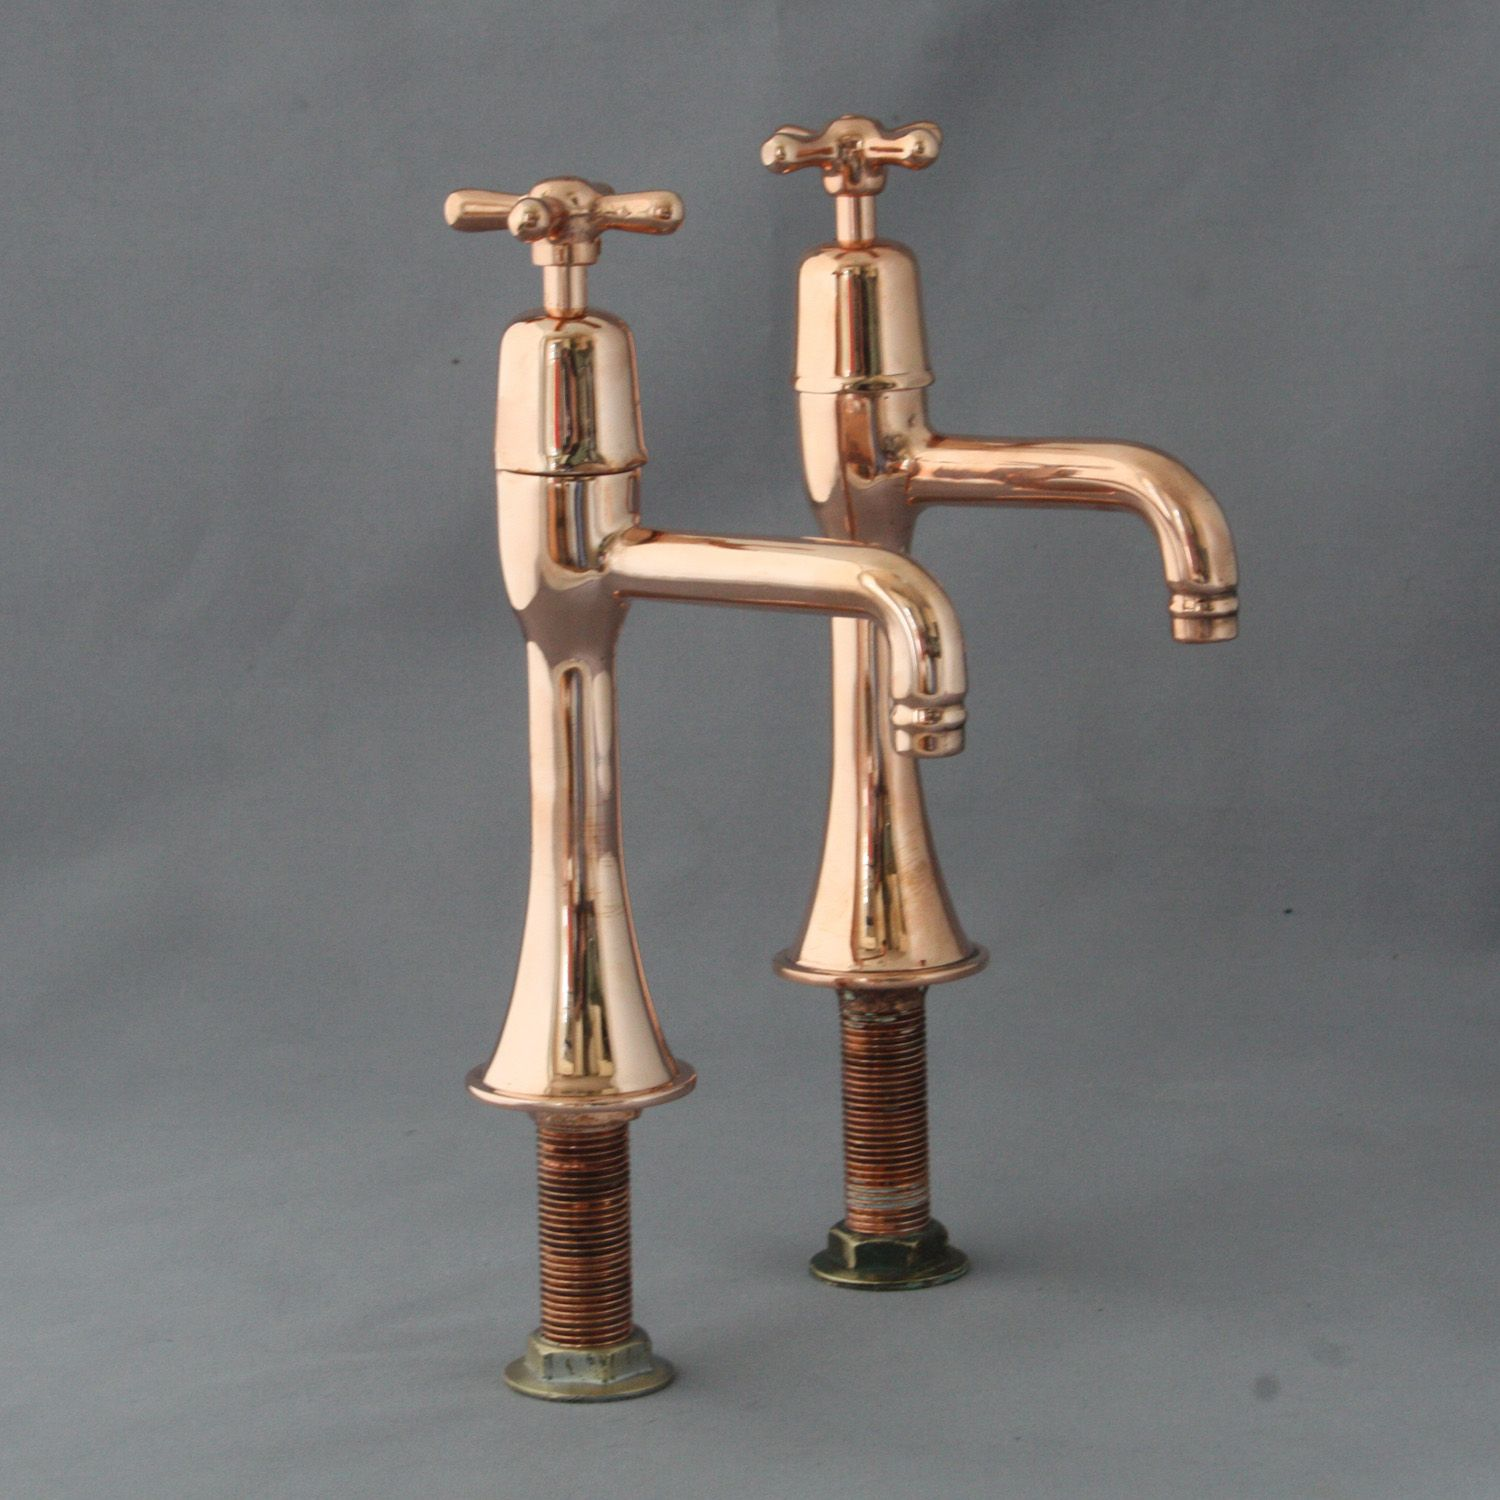 Shanks sink and stand reclaimed porcelain sinks and chrome stands - A Pair Of Vintage Copper Belfast Sink Taps